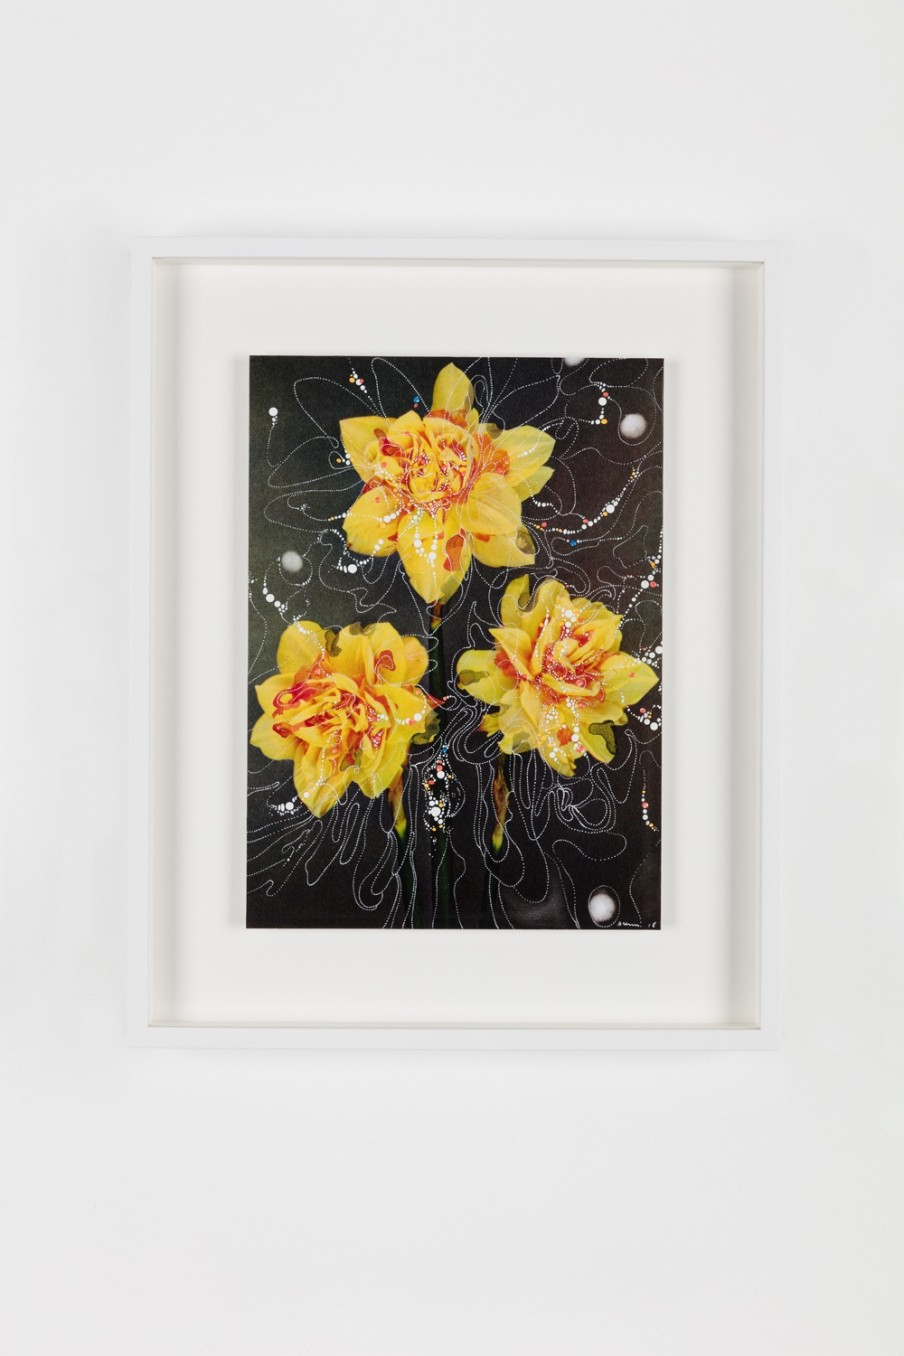 Sebastiaan Bremer, Double Narcissus Texas Mark, 2018, Archival inkjet pigment print on resin coated paper with hand additions in acrylic, photo retouch dye, and pigment pen, 27.9 x 20.3 cm, 11 x 8 in, Framed: 38.6 x 31.1 x 3.7 cm, 15 1/4 x 12 1/4 x 1 1/2